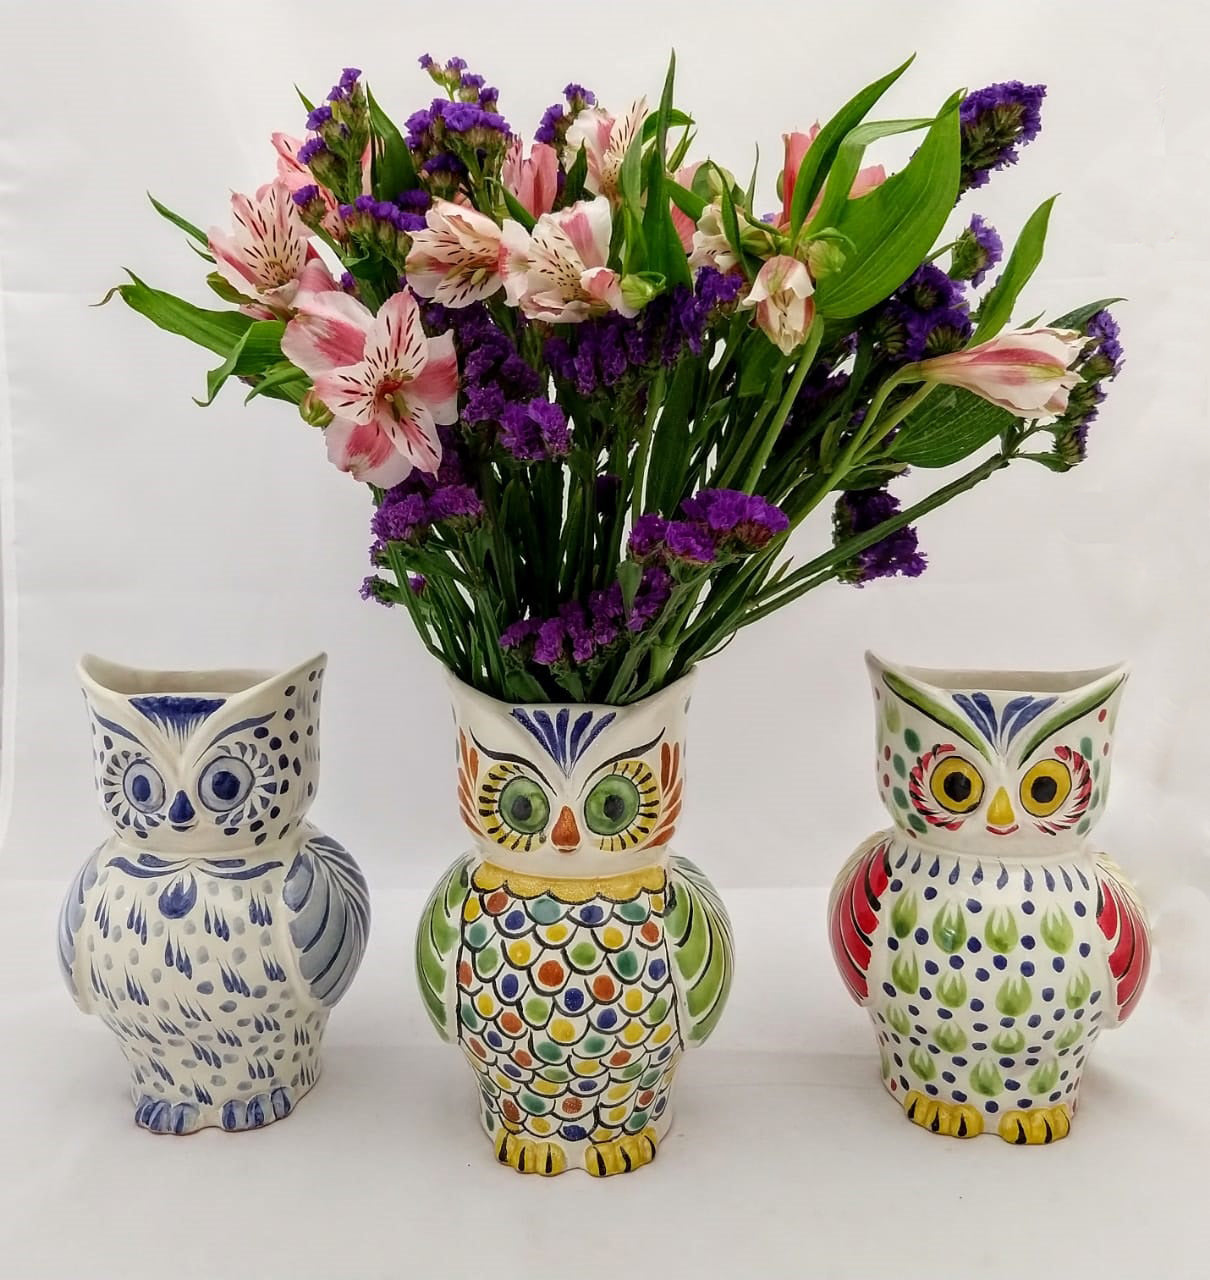 Owl Flower Vase Set (3 pieces) 7.5